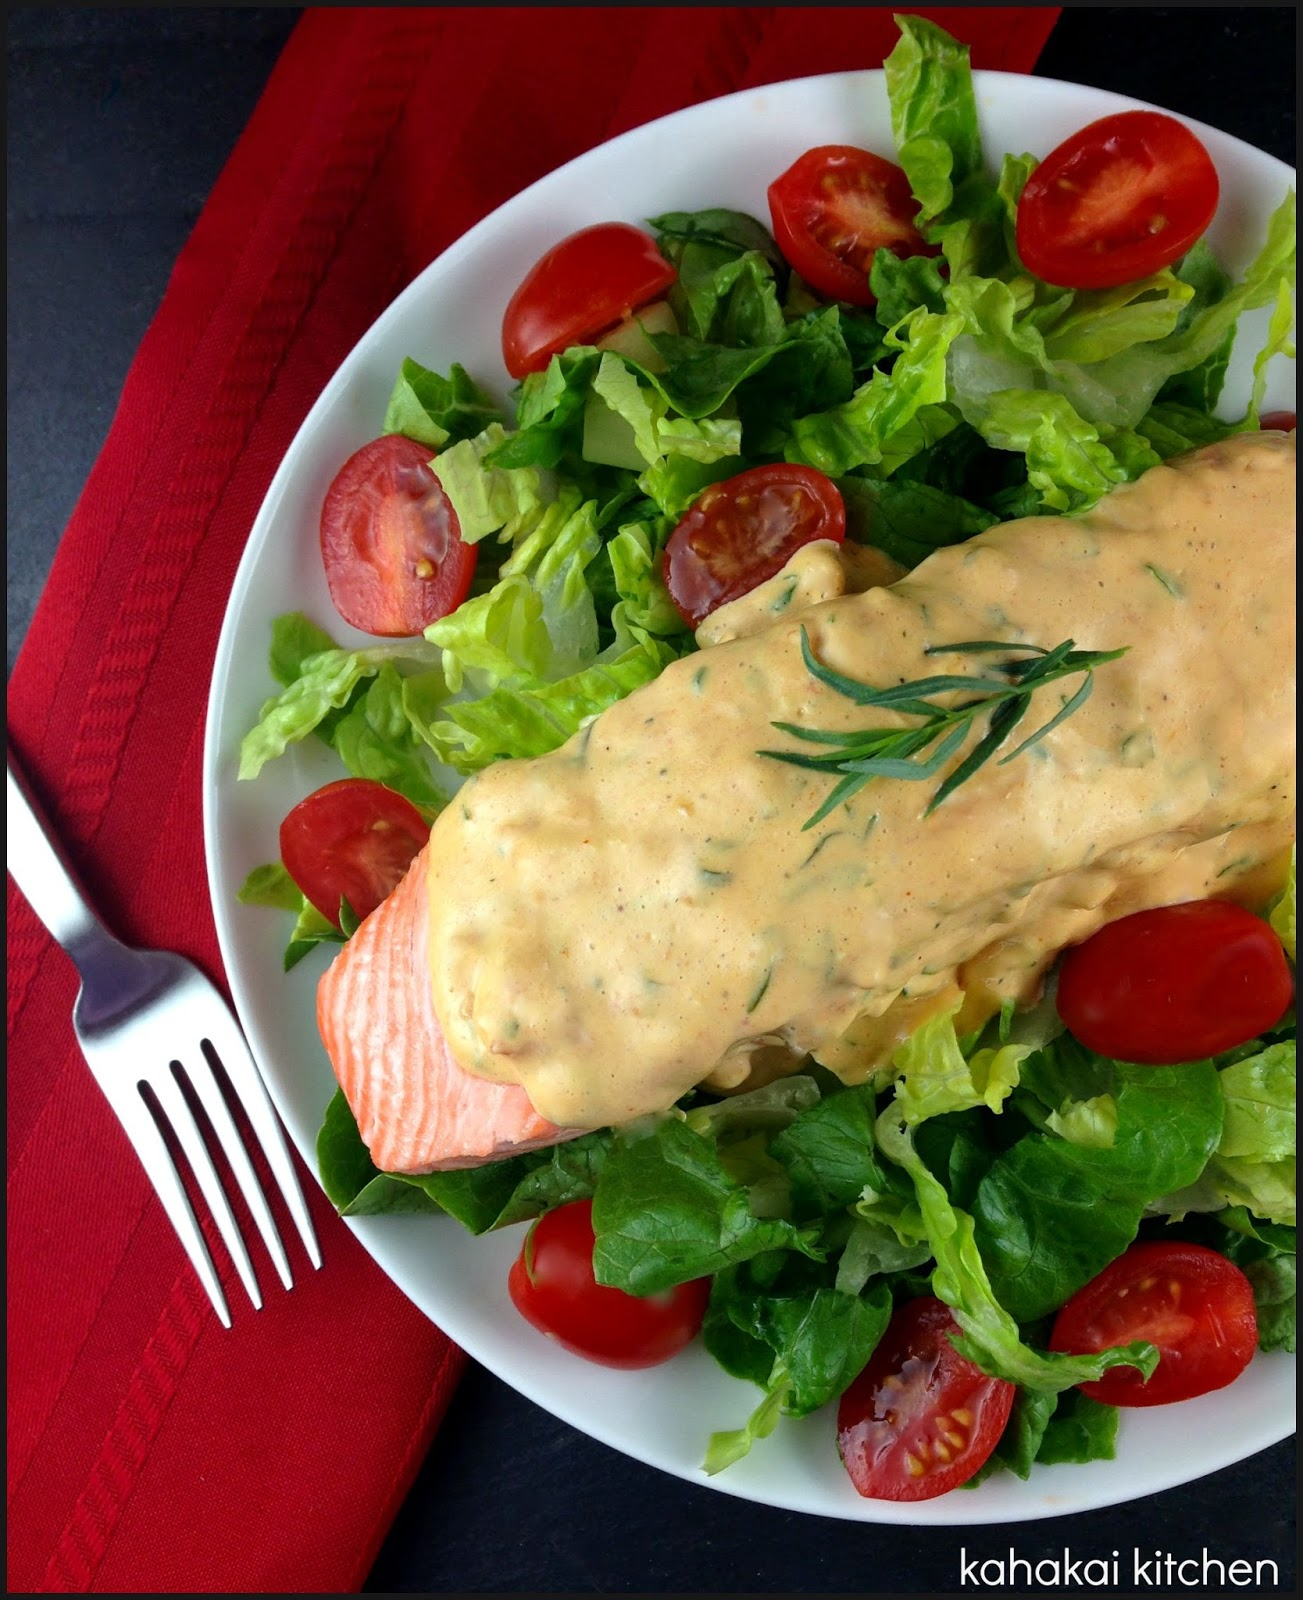 Salmon With Bearnaise Sauce Unique Of Poached Salmon with Bearnaise Sauce Photo